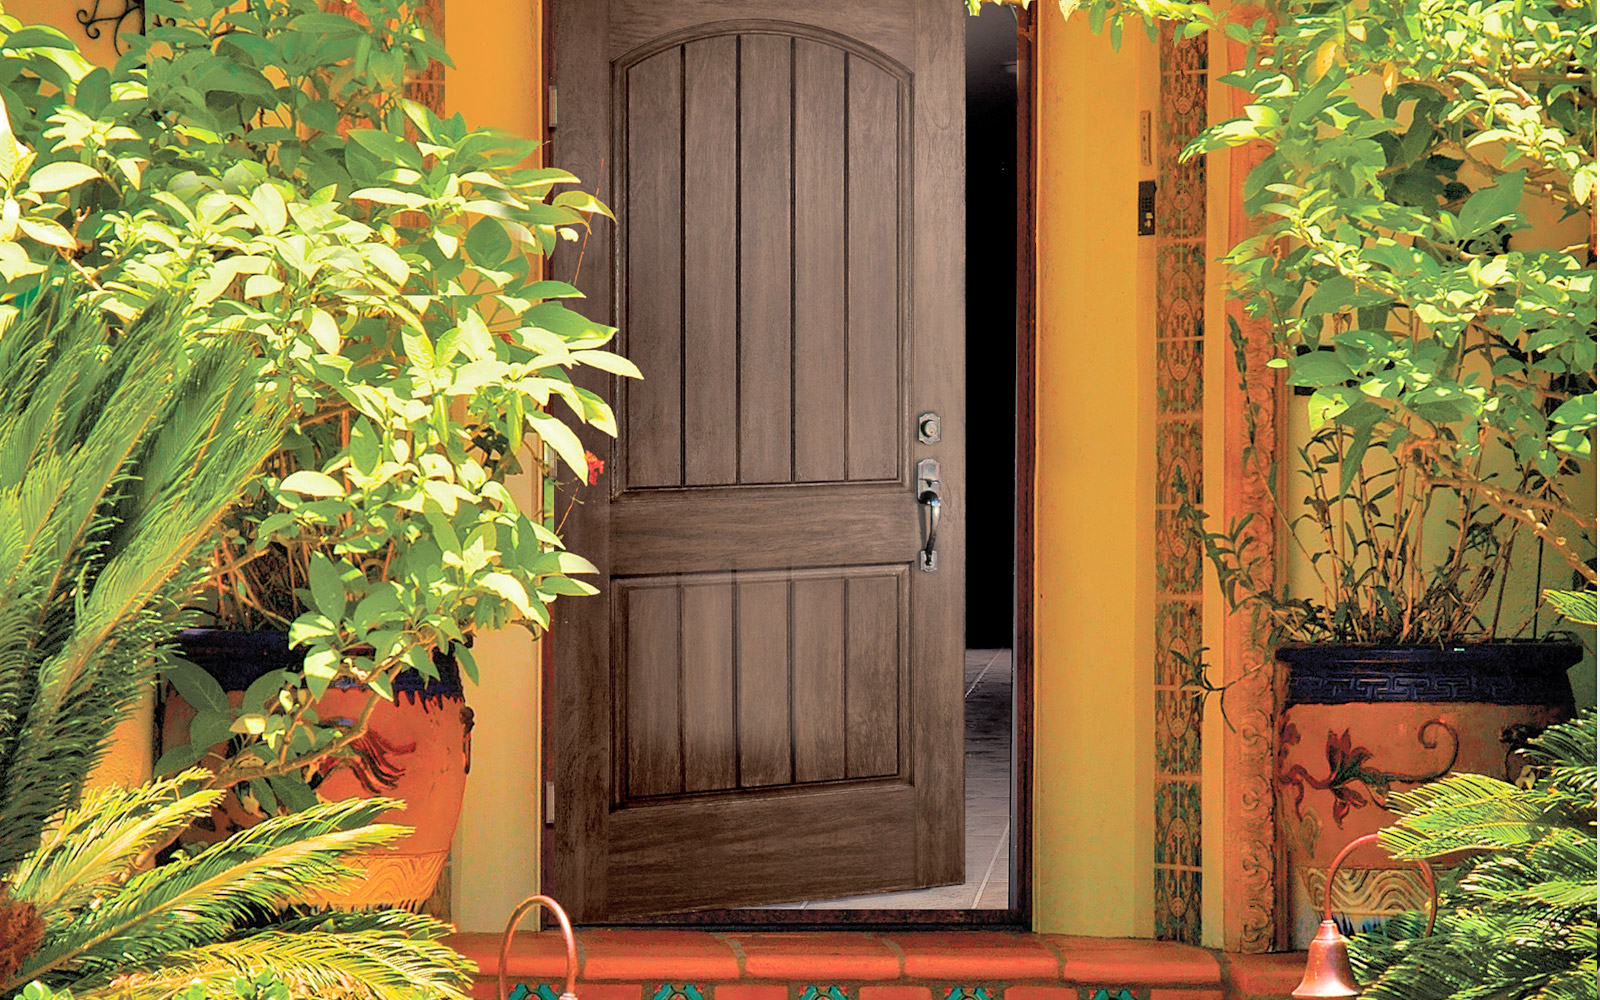 gallery--1600x1000--wooden-door-open.jpg